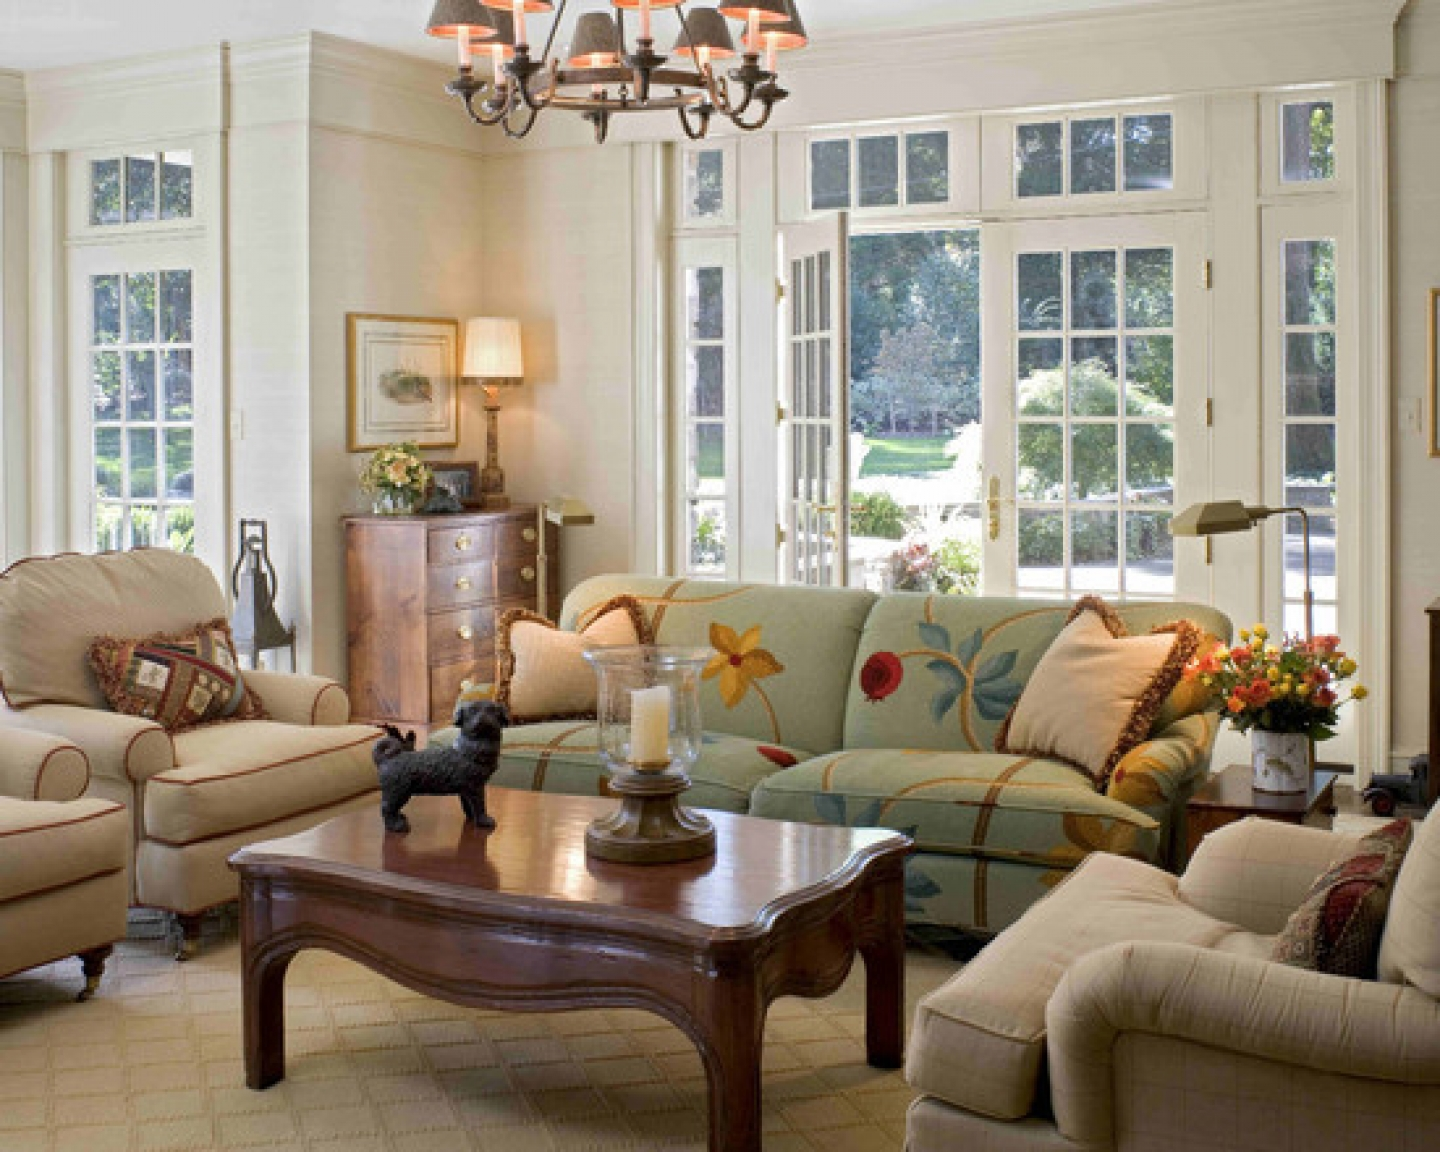 Chic French Country Inspired Home Real Comfort And Elegance Ideas 4 Homes